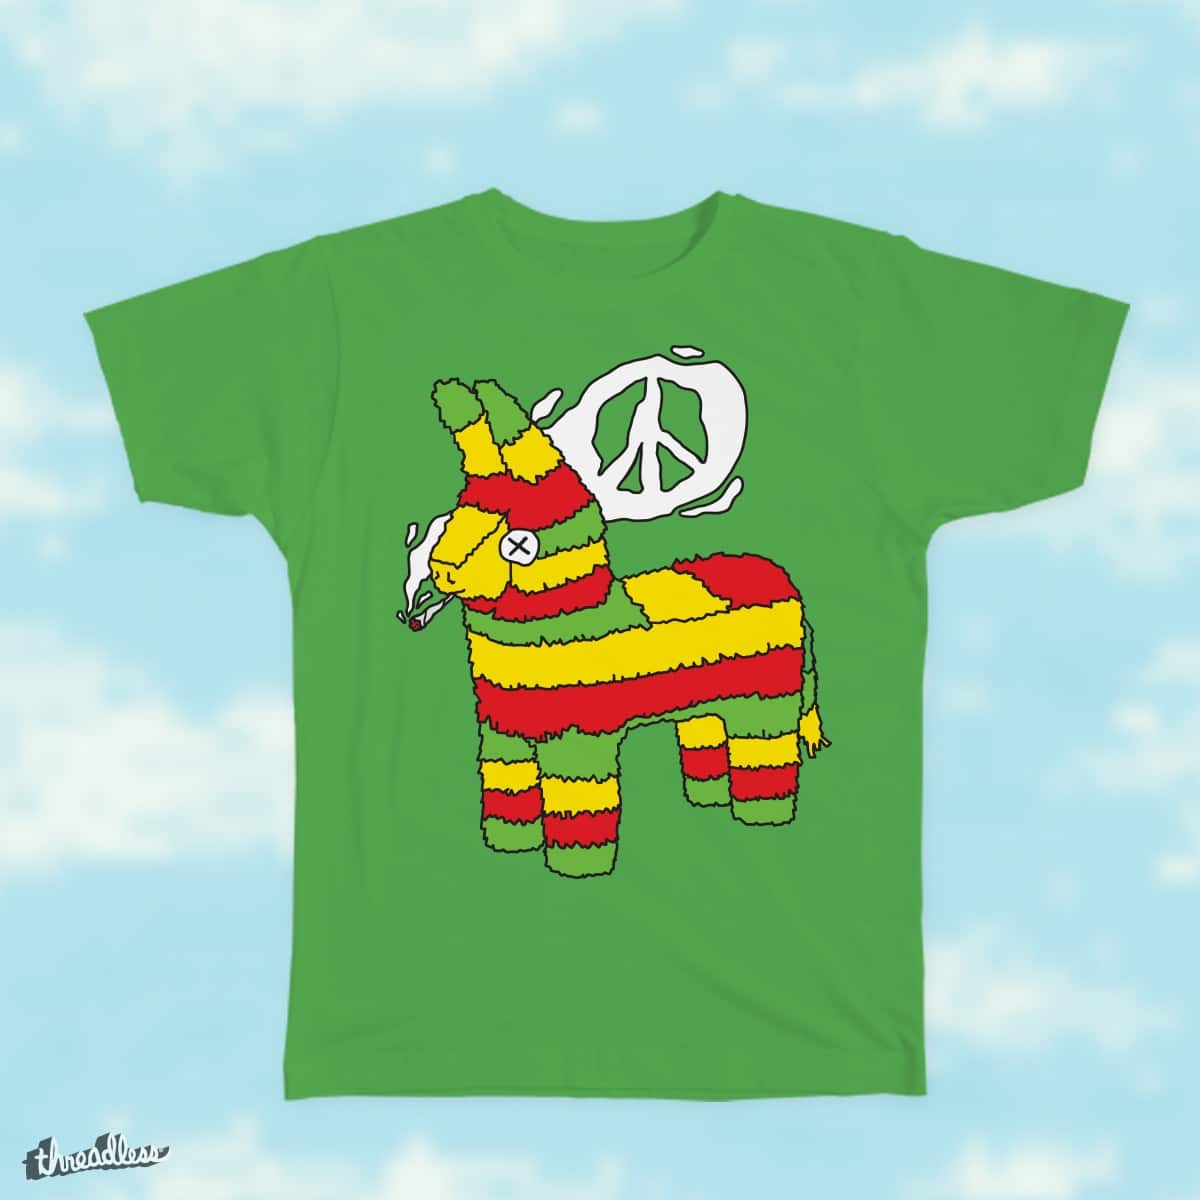 Peaceful pinata by dmitriylo on Threadless